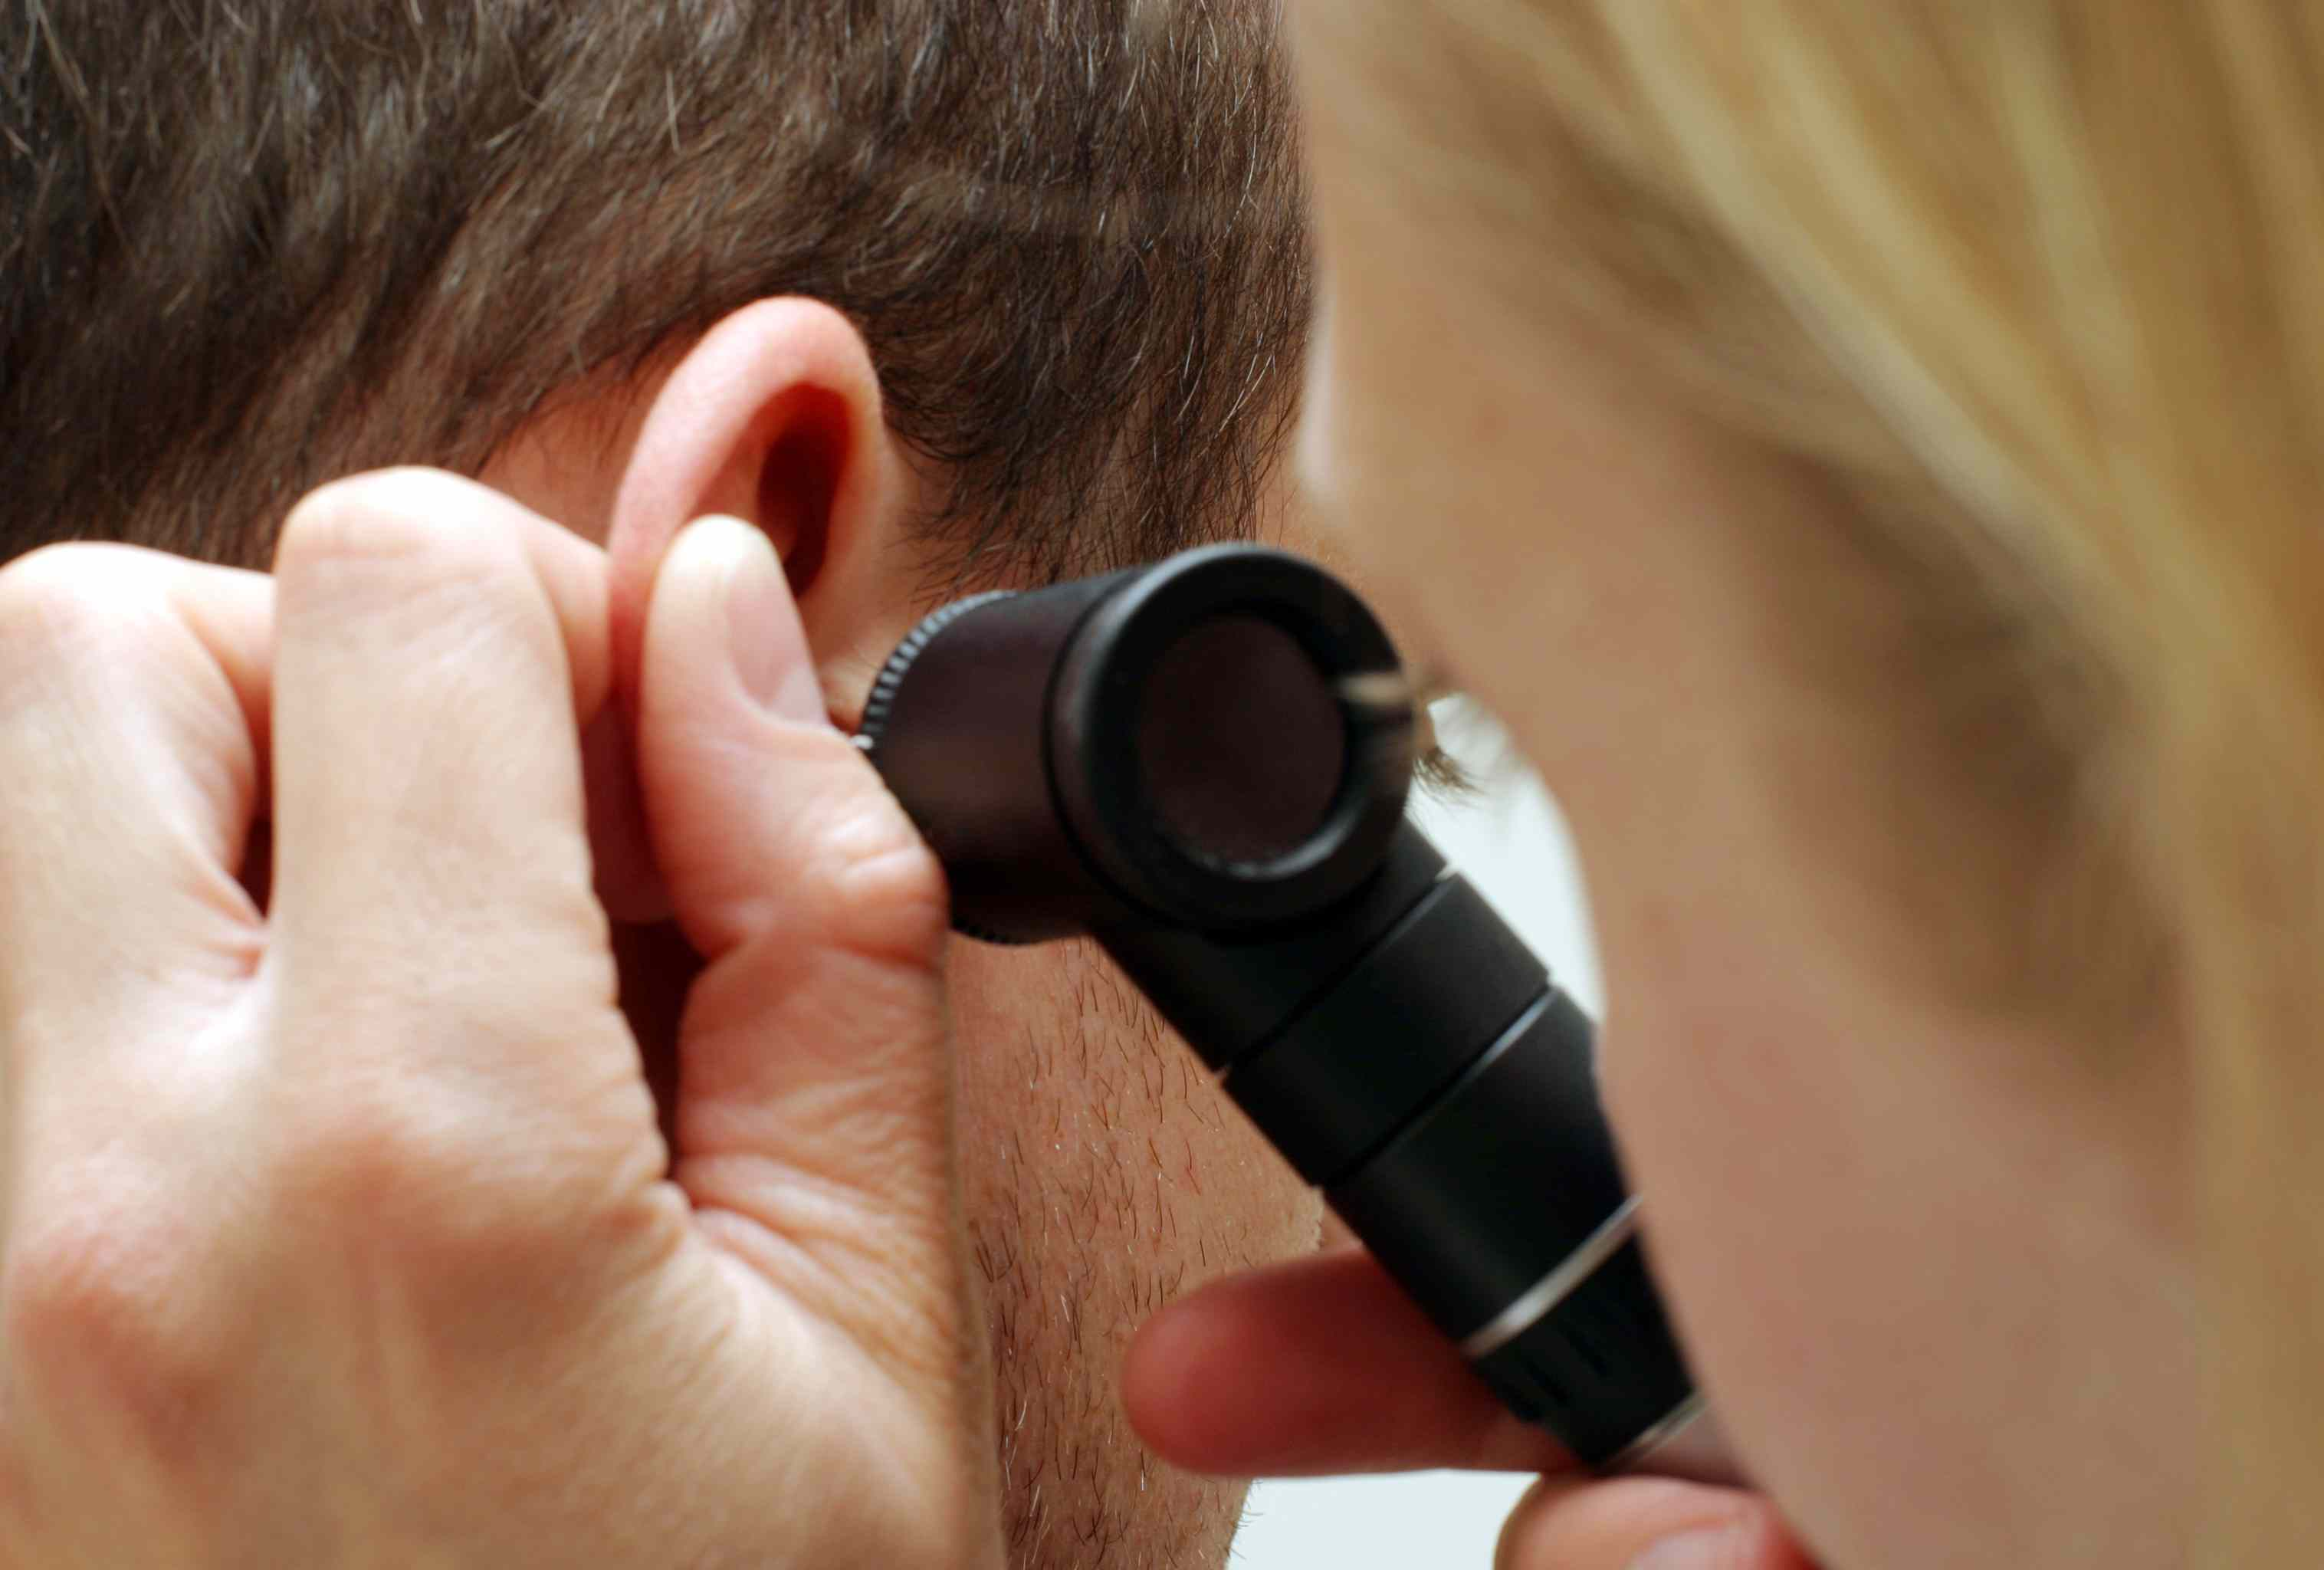 Doctor examining the ear of a patient